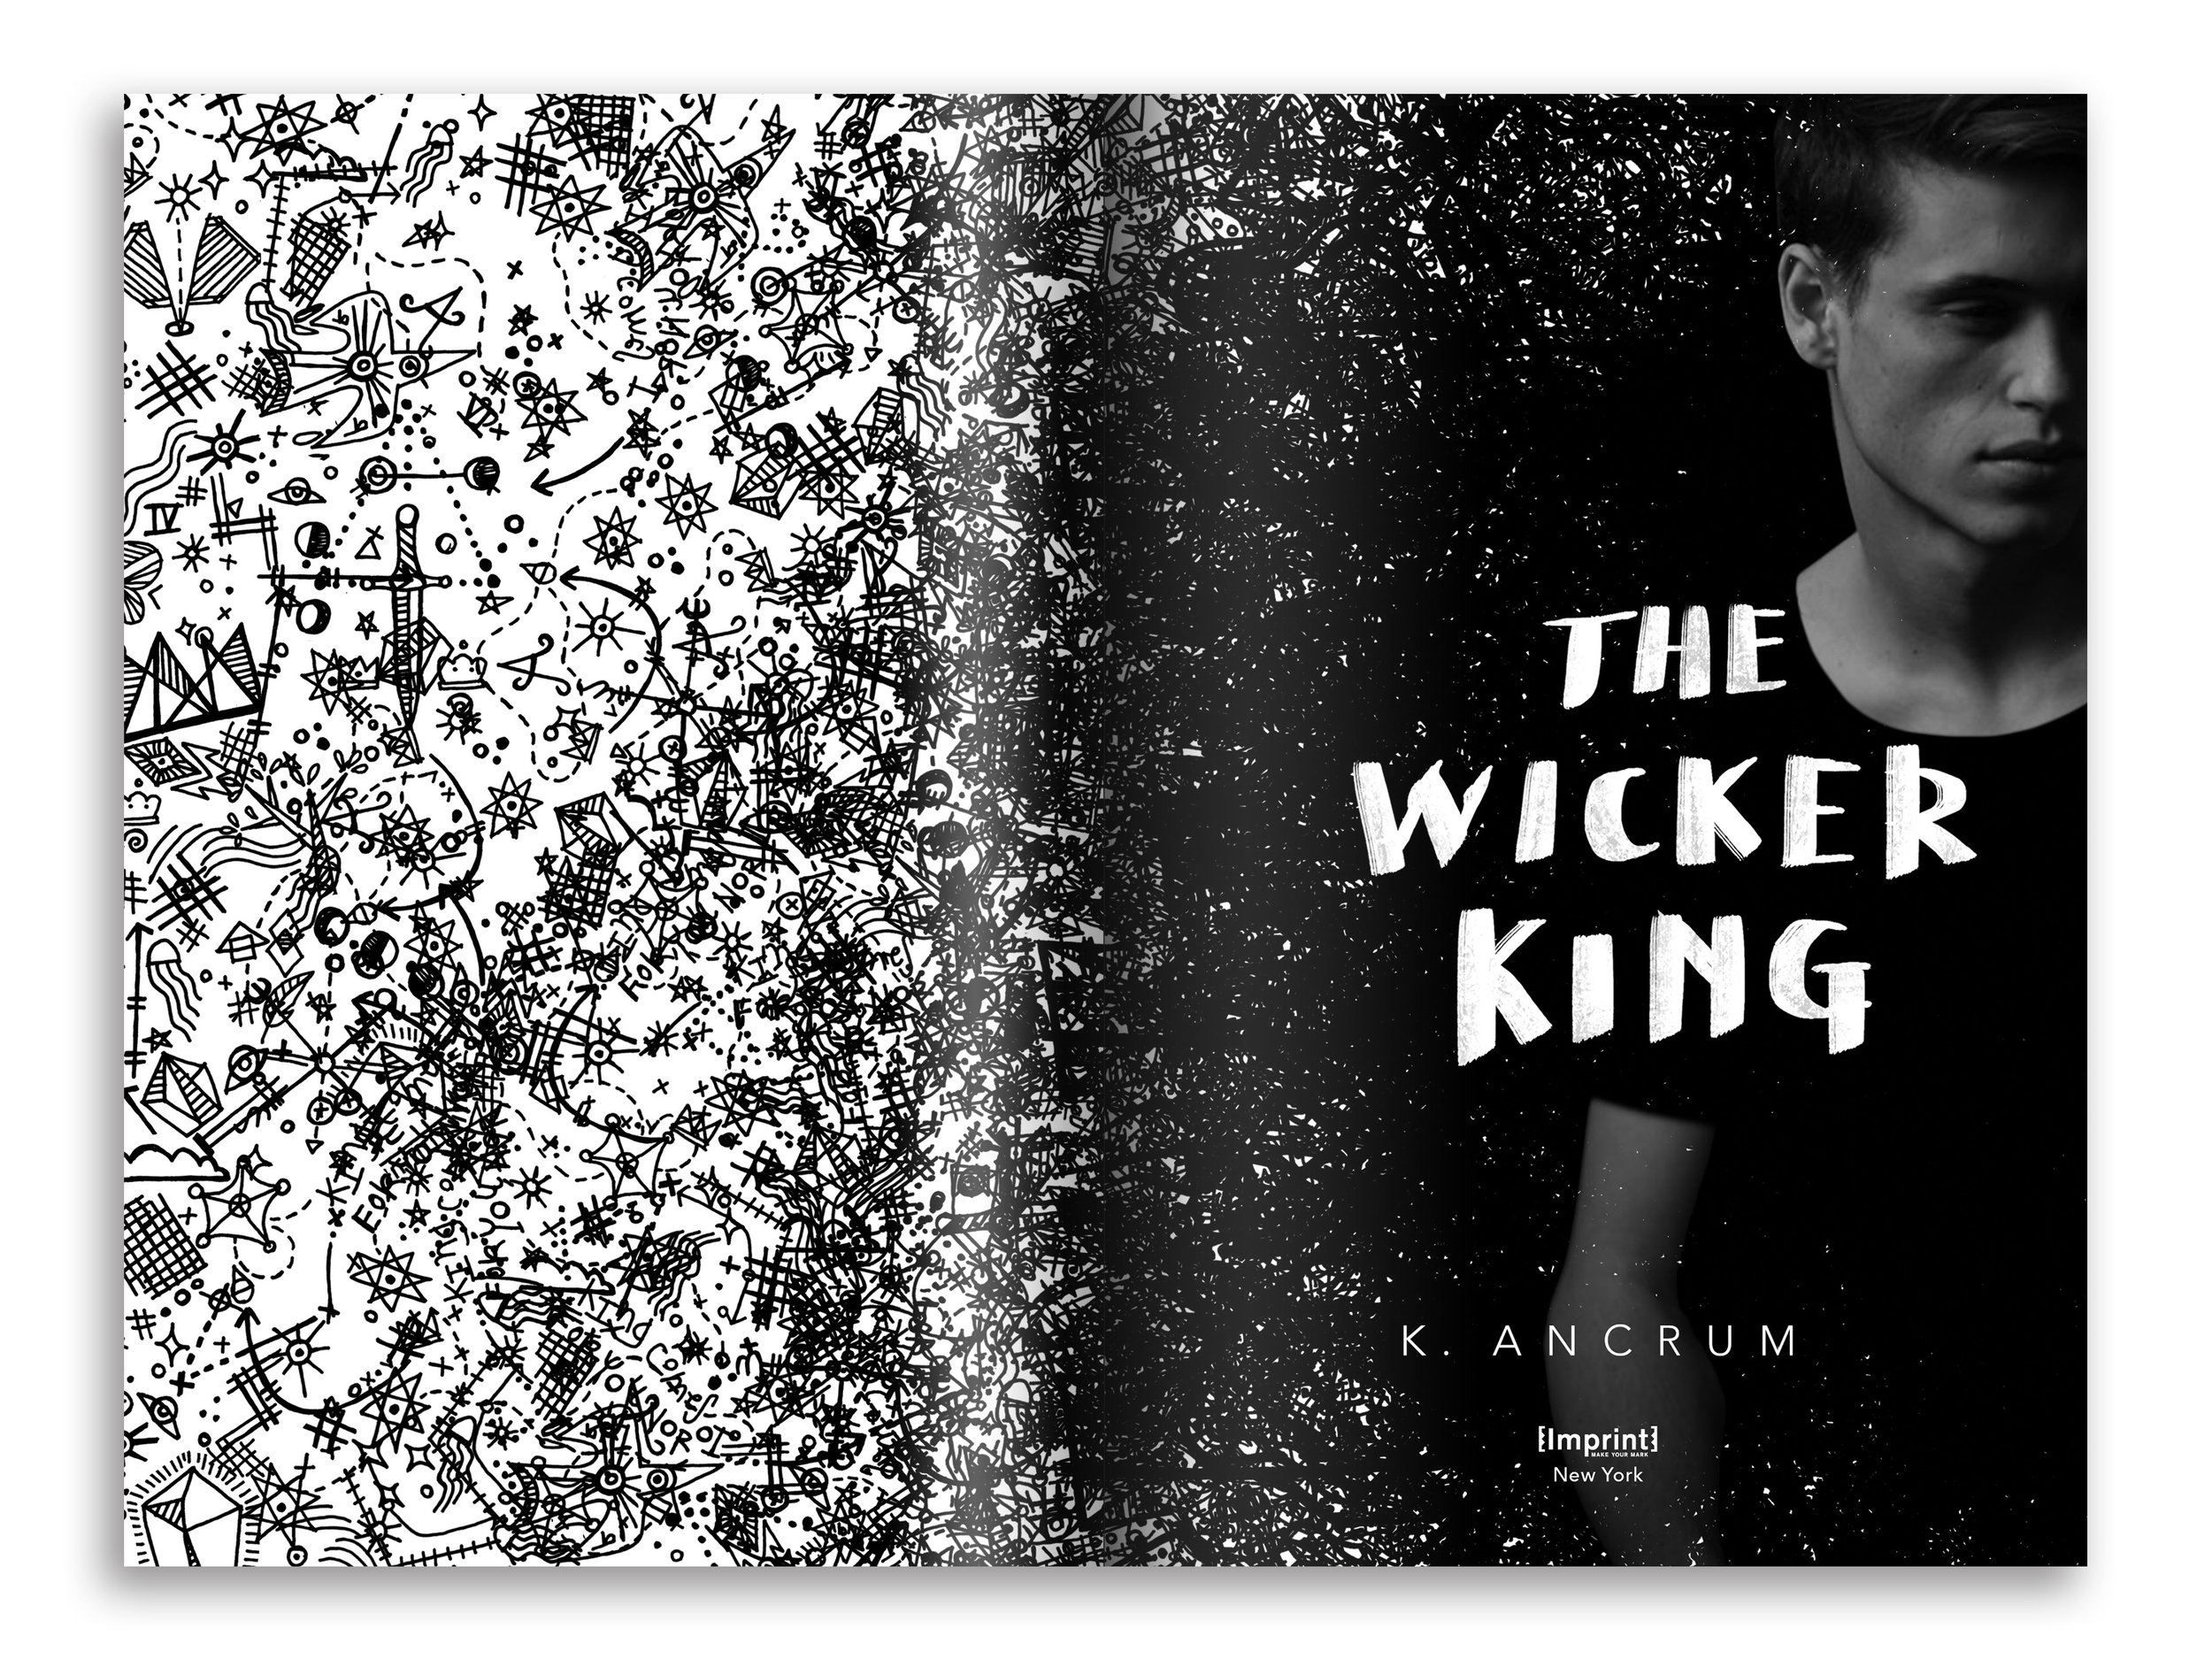 WickerKing_spread1.jpg